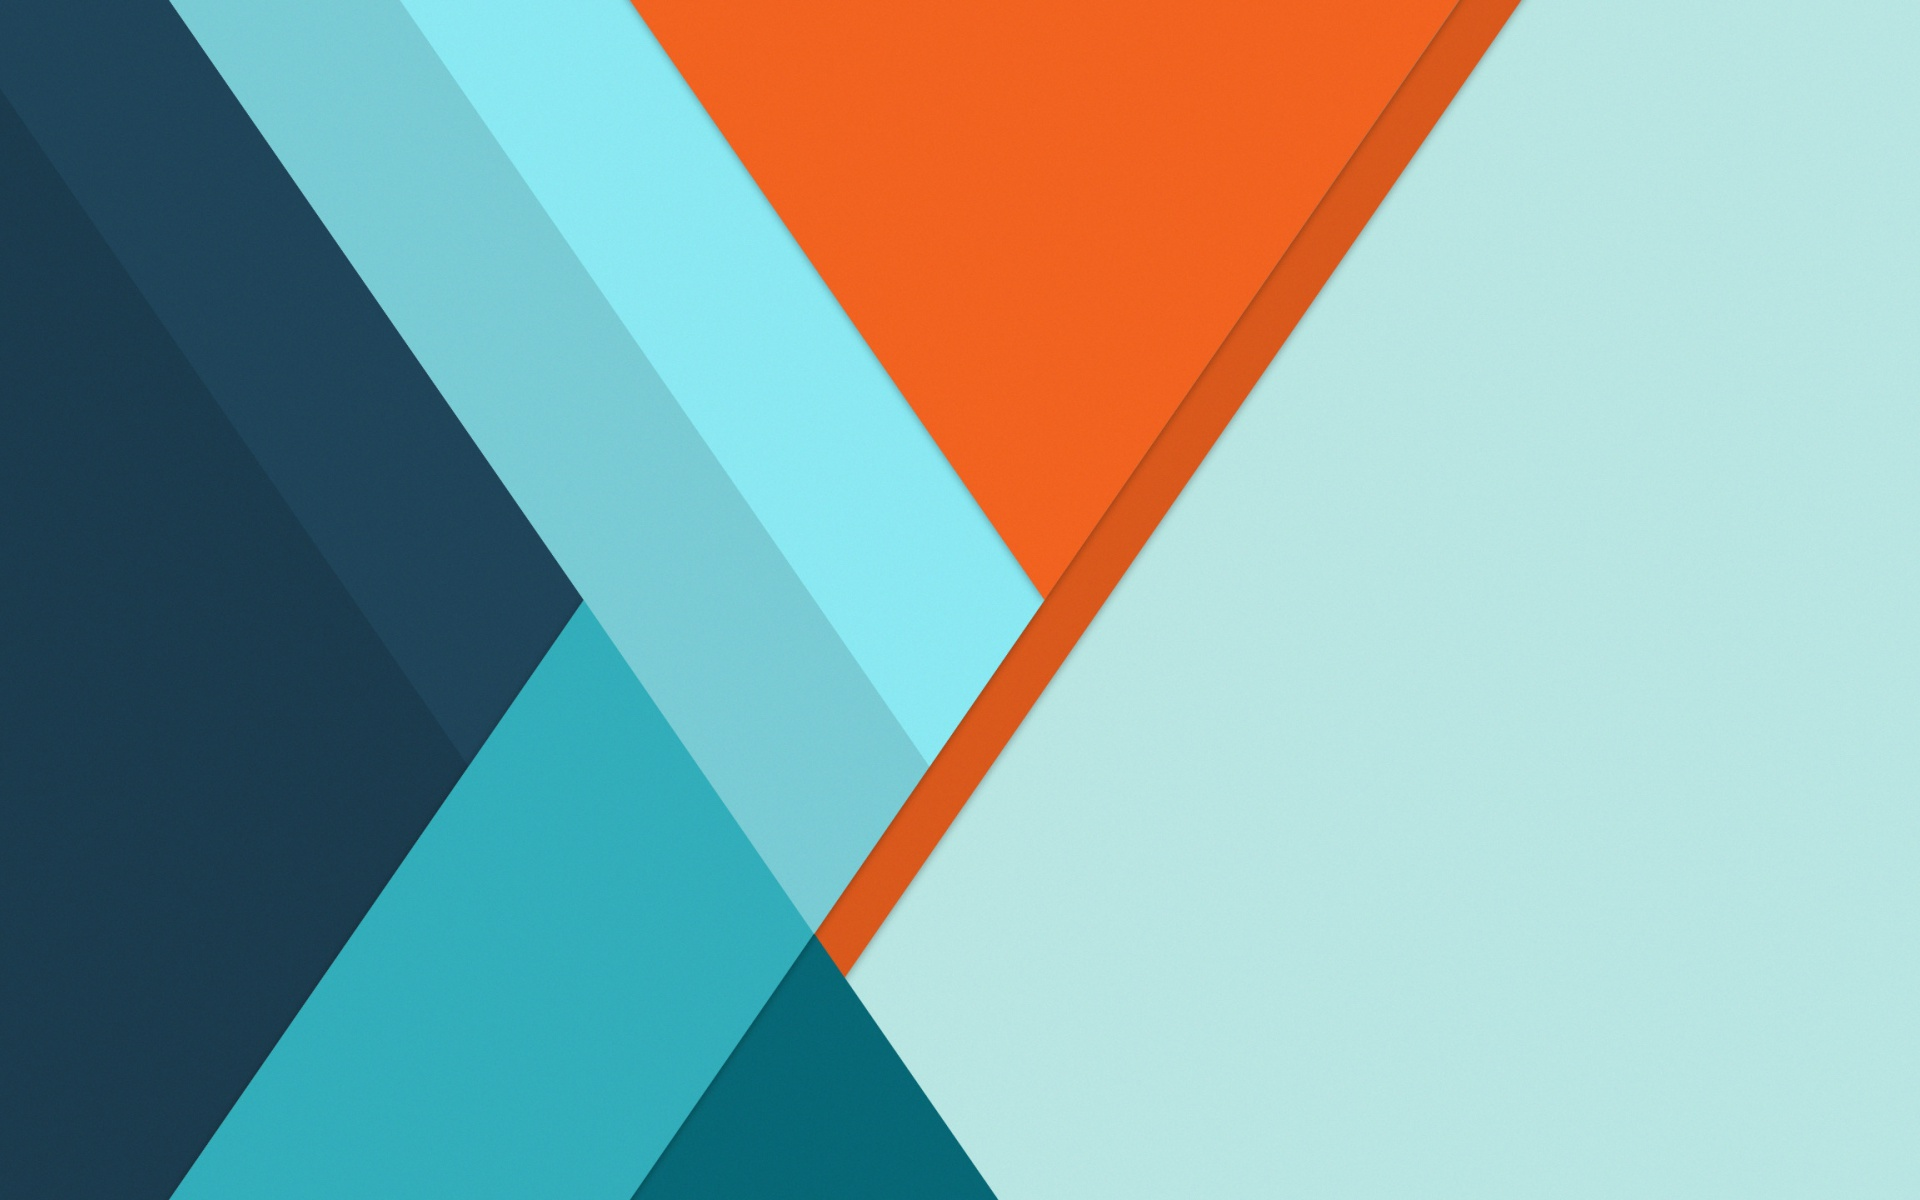 material design wallpaper blue - photo #17